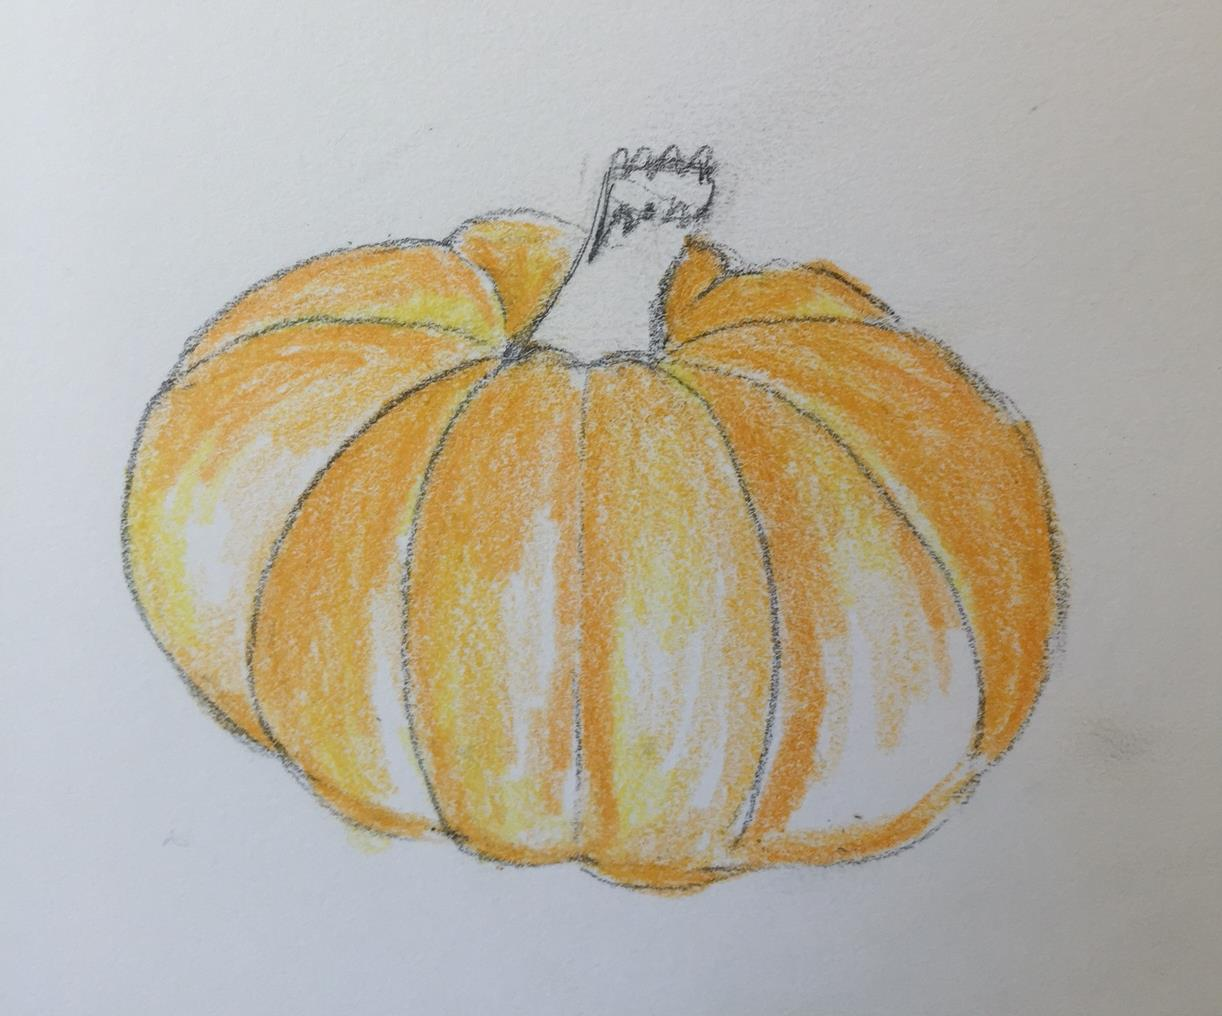 Drawn pumpkin shading To in leave lines creases